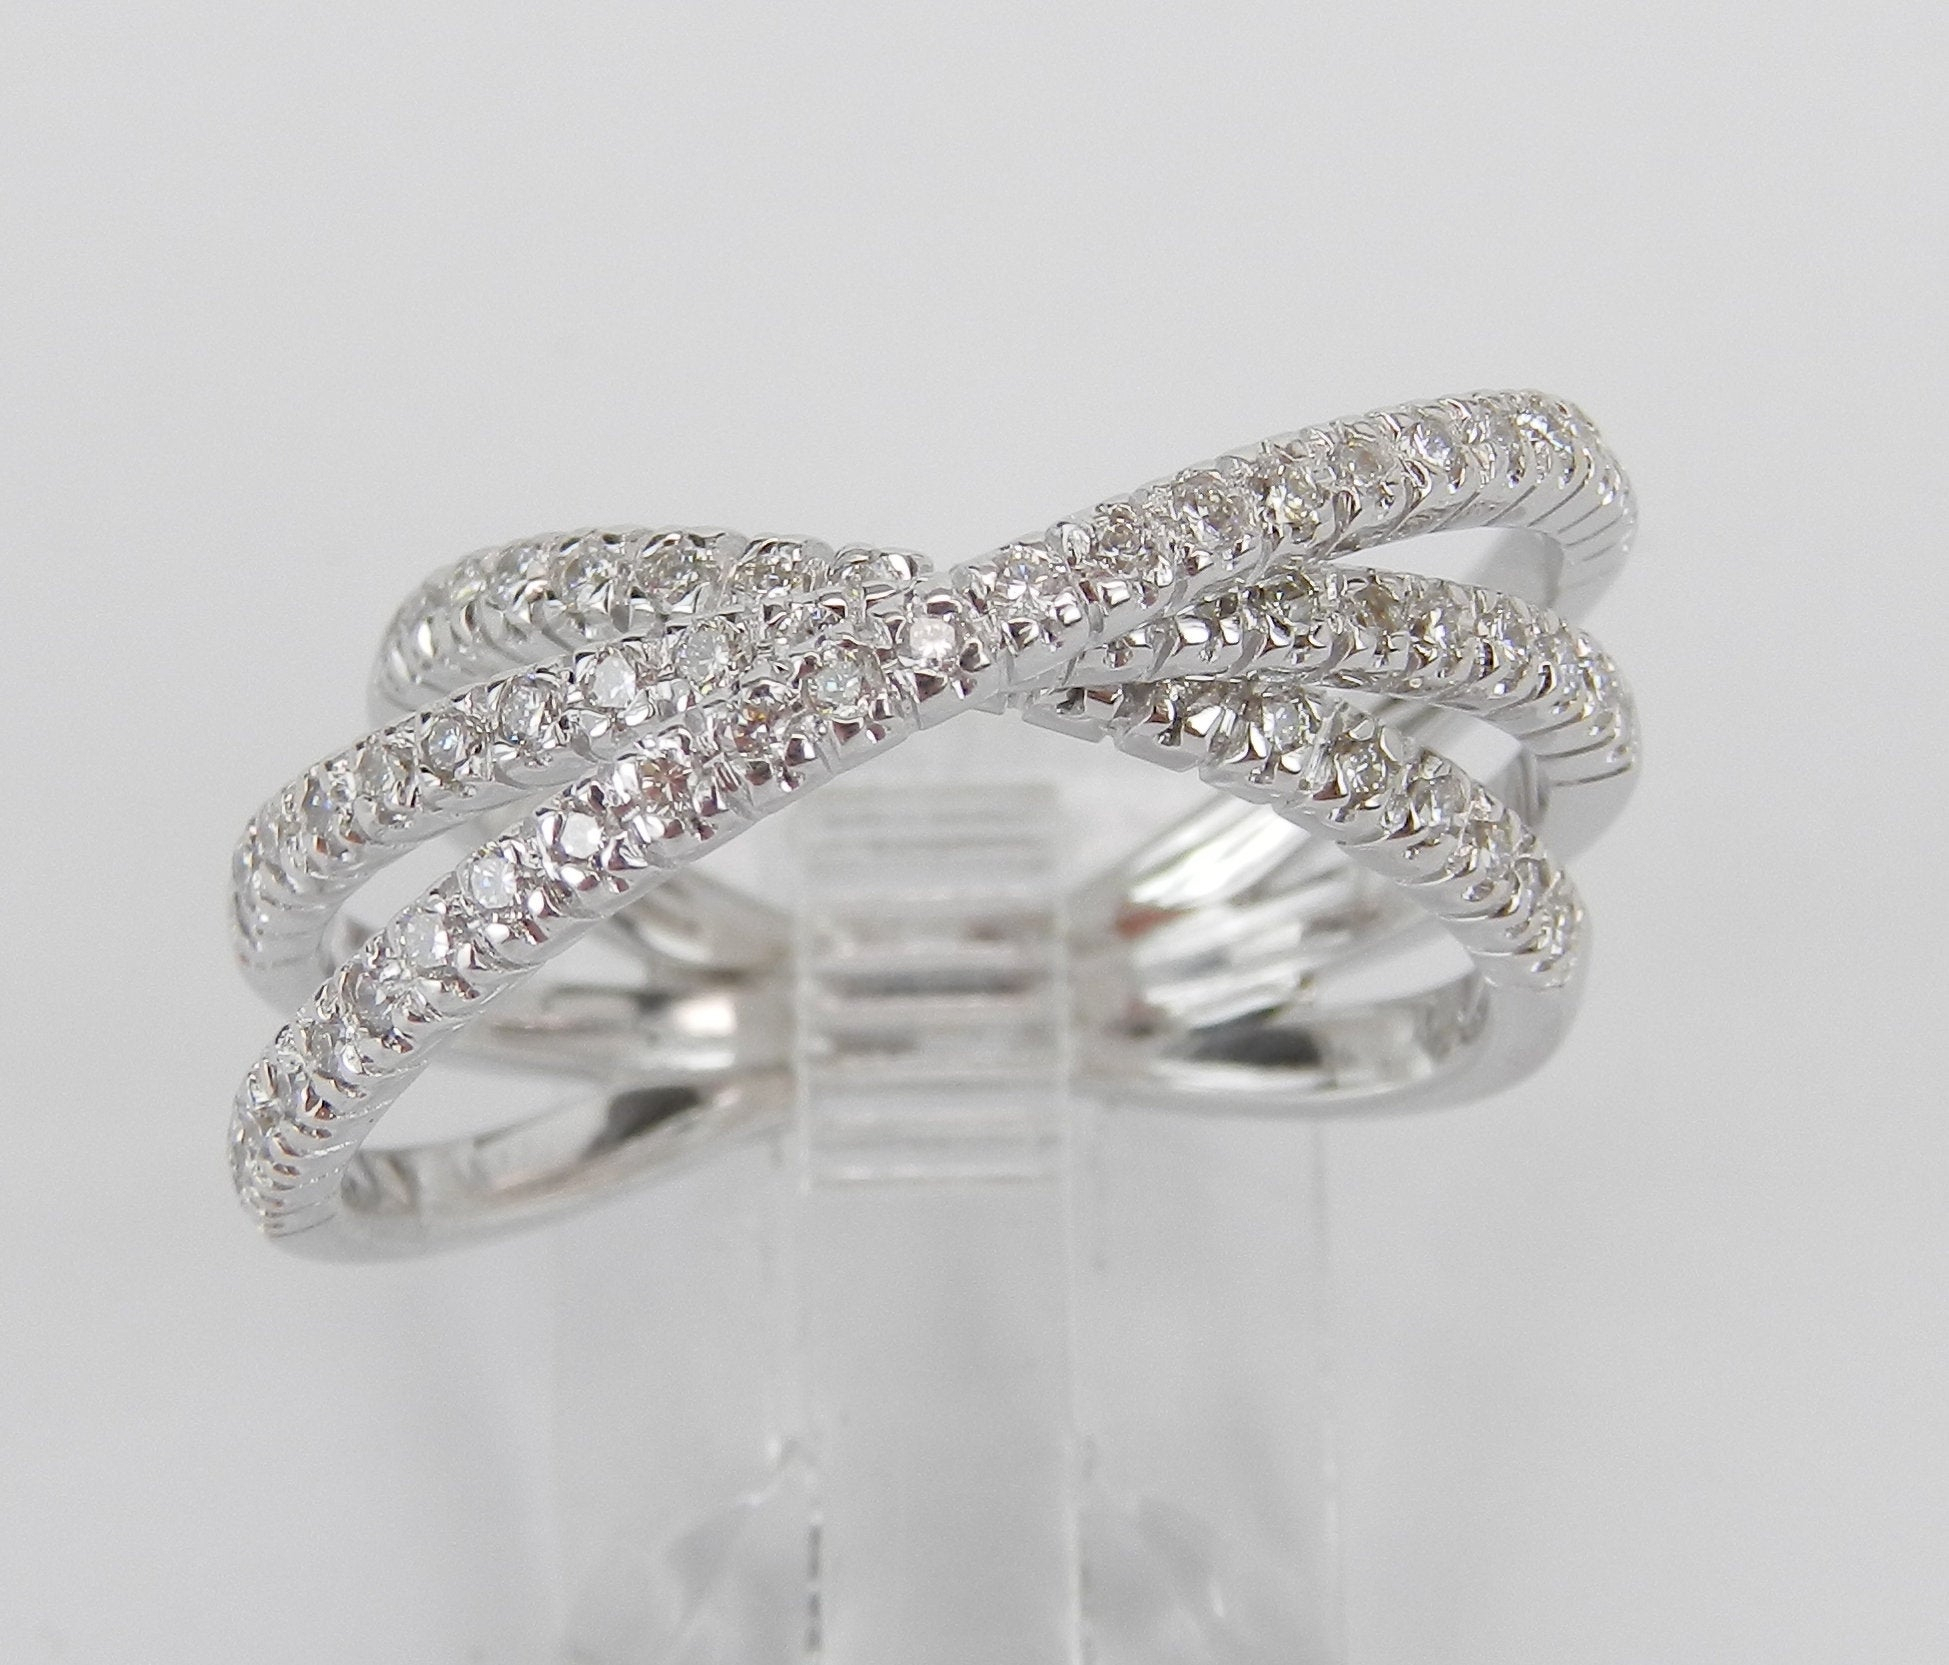 18K White Gold Diamond Crossover Wedding Ring Multi Row Anniversary Band  Size  (View 6 of 25)